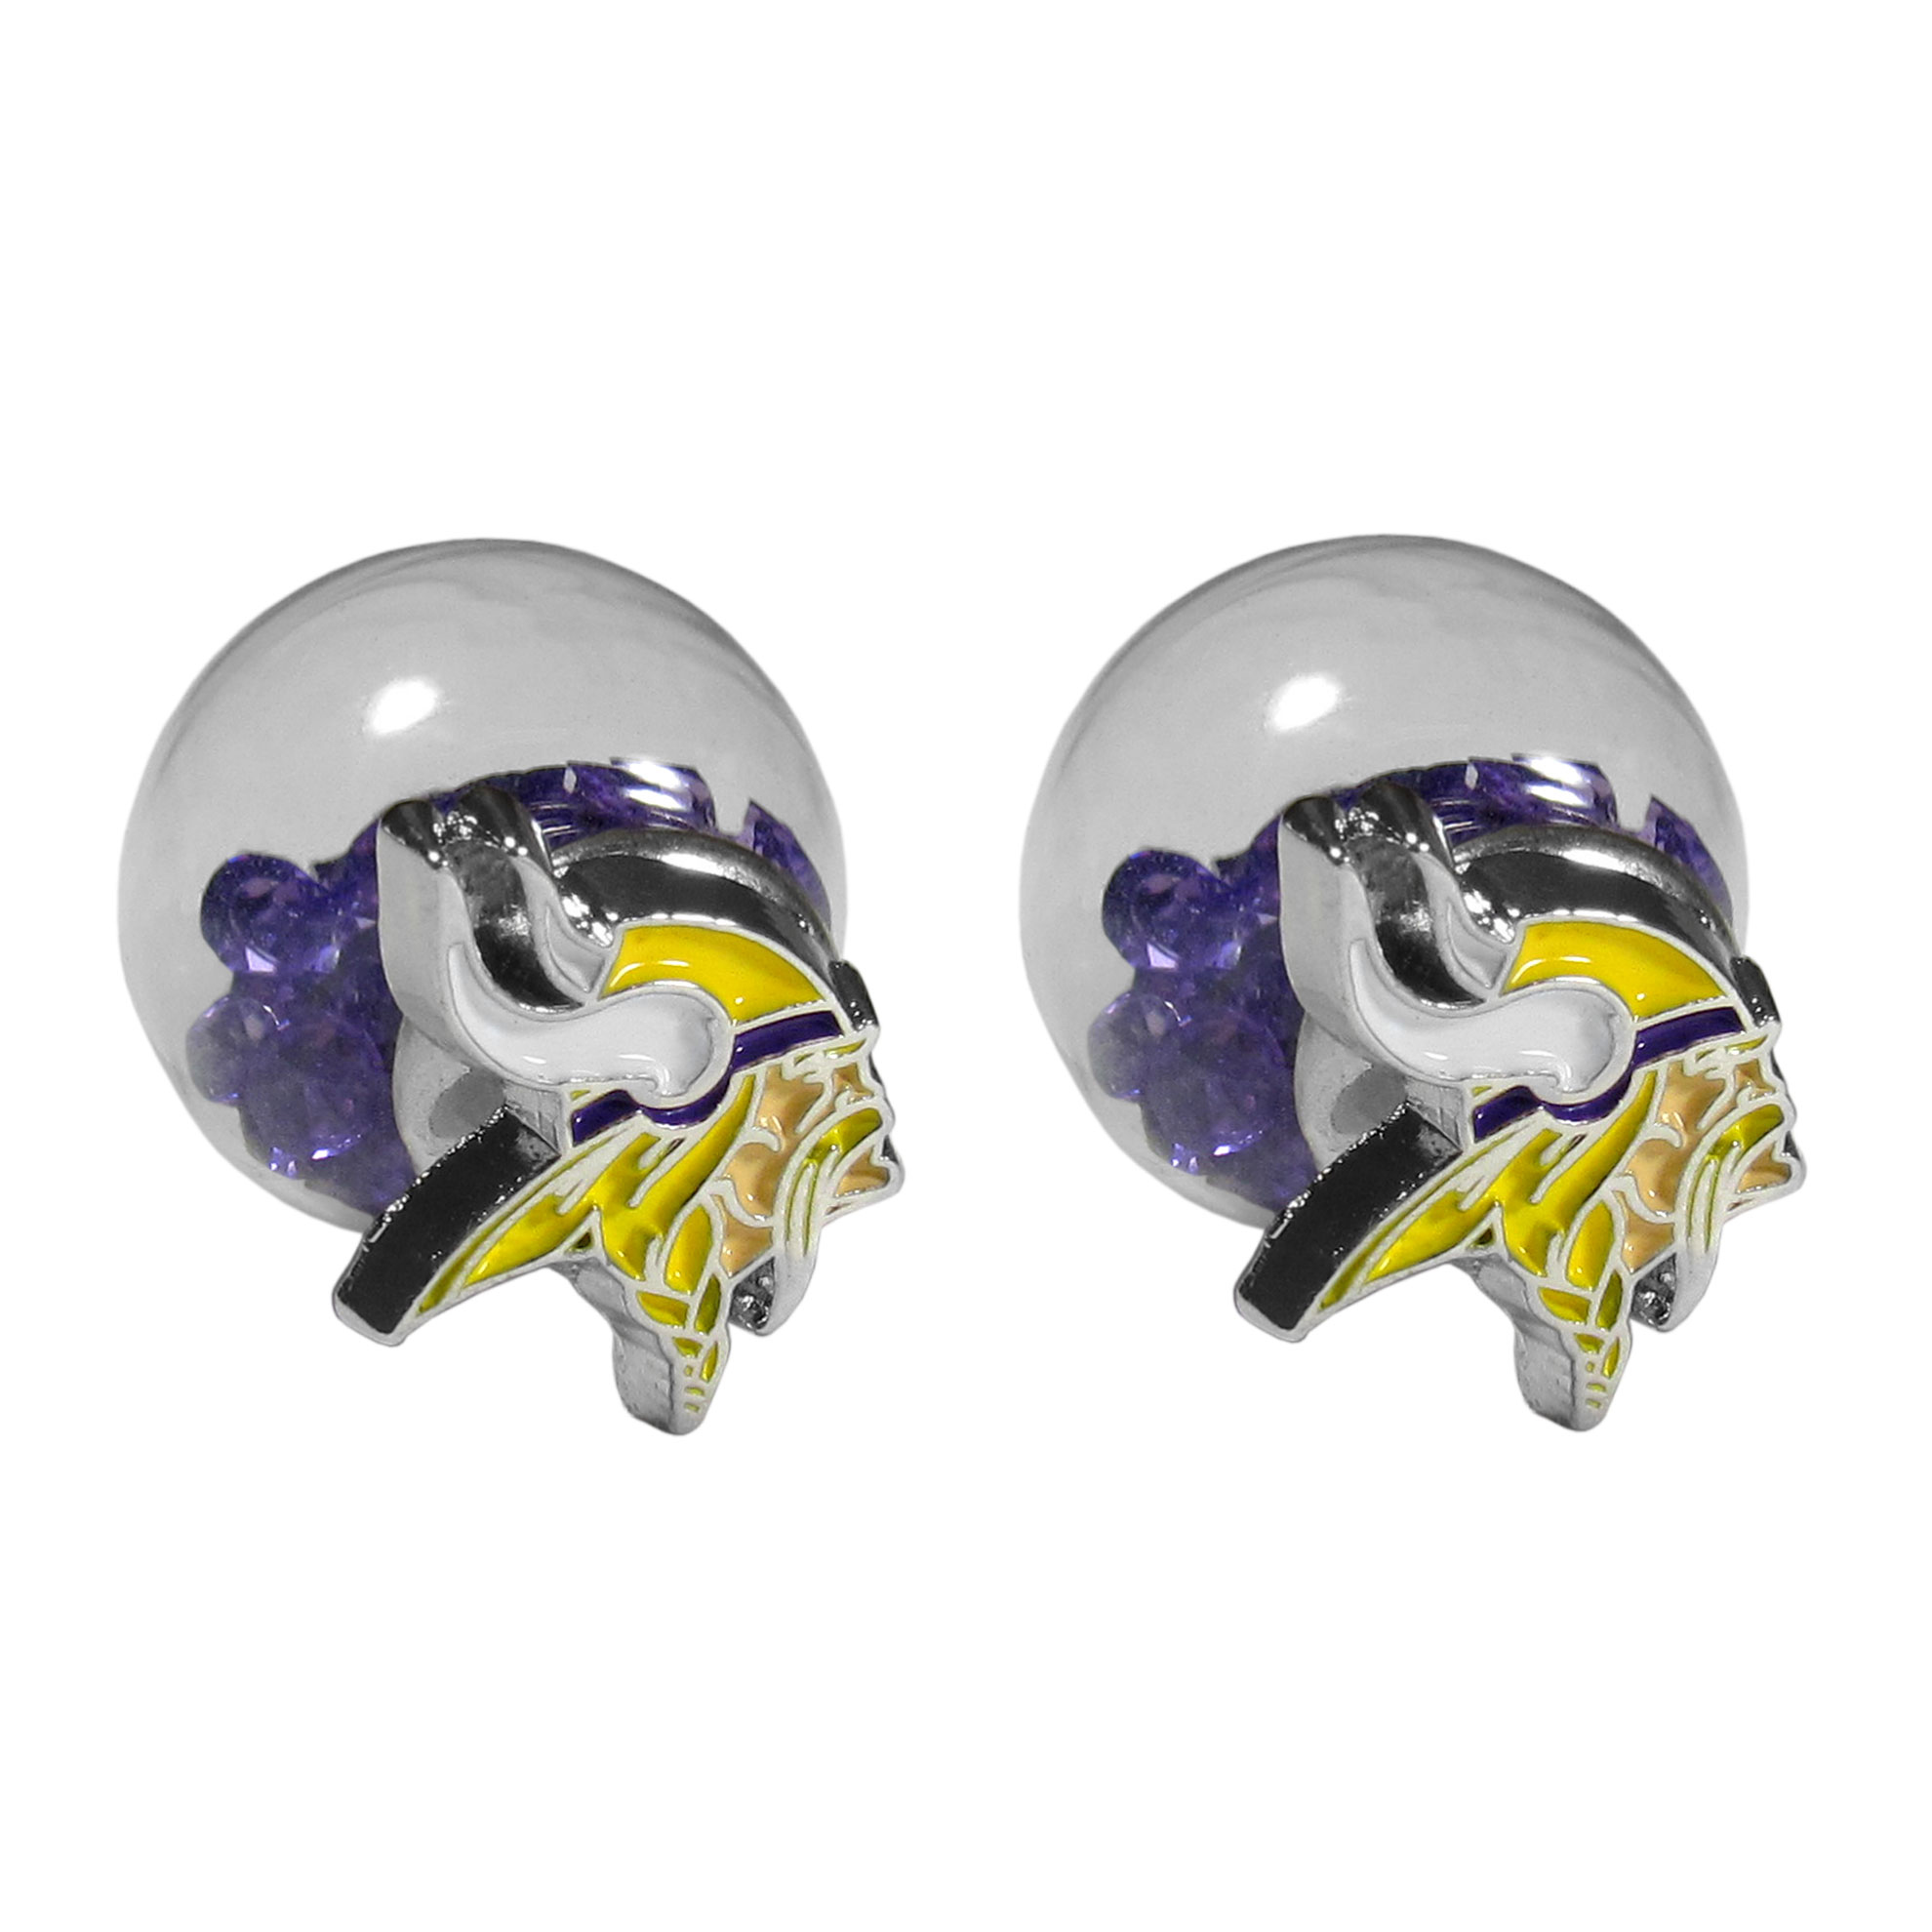 Minnesota Vikings Front/Back Earrings - Get in on one of the most popular trends in jewelry, front and back earrings! This must-have style is all of over the red carpets and we taken this contemporary look and paired it with your love of the Minnesota Vikings! The front of the earring is a sporty team logo and the back of these eye-catching earrings is a glass ball filled with colored crystal beads. This piece is perfect for a fashion-forward fan, with bold taste and trend-setting style.